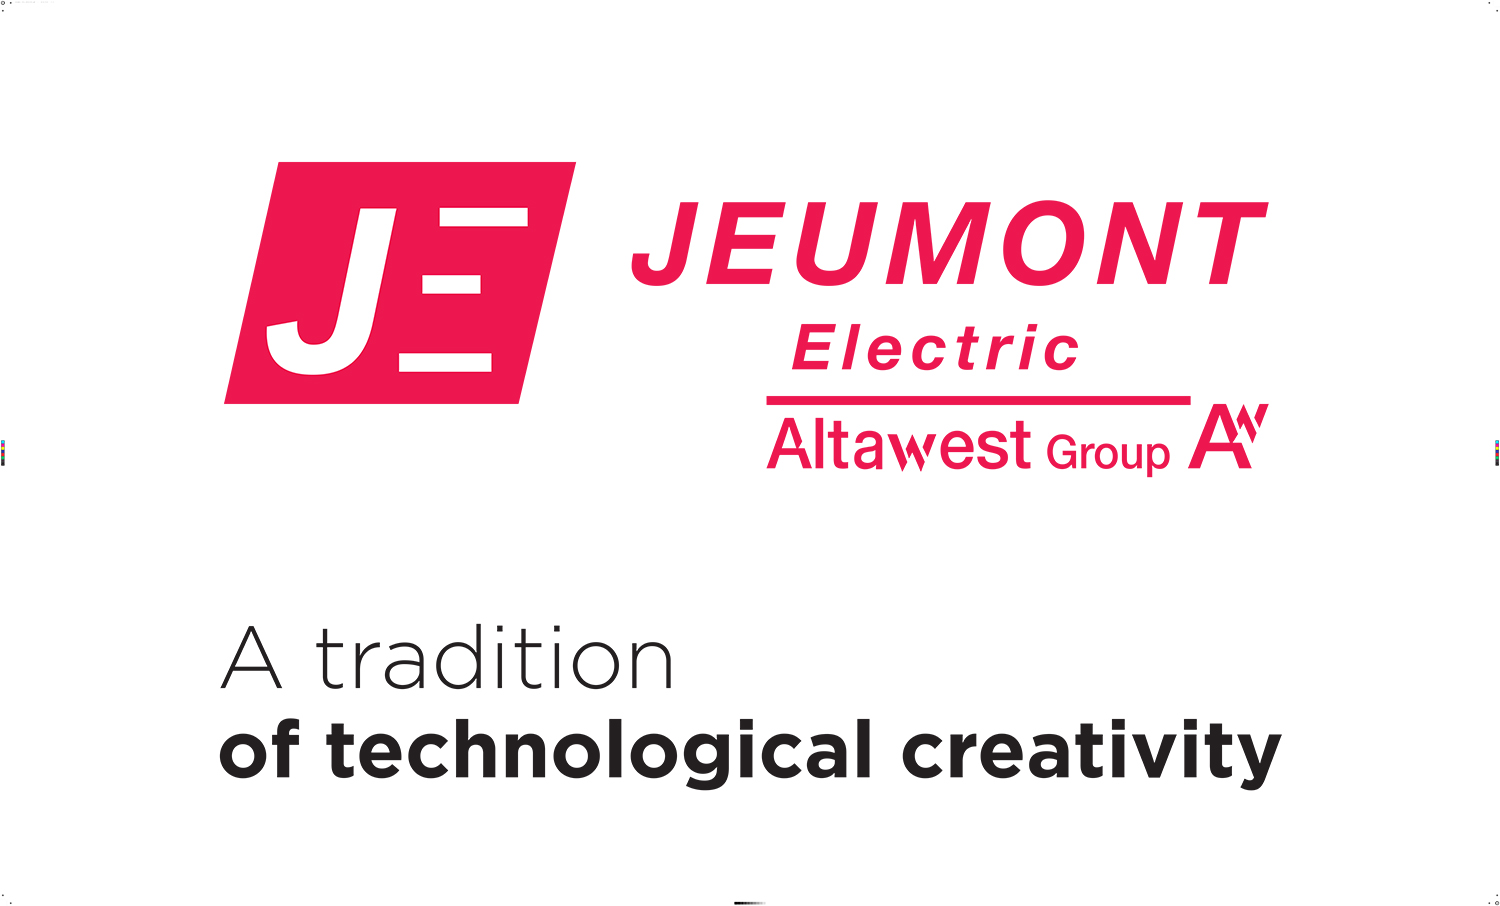 JEUMONT ELECTRİC